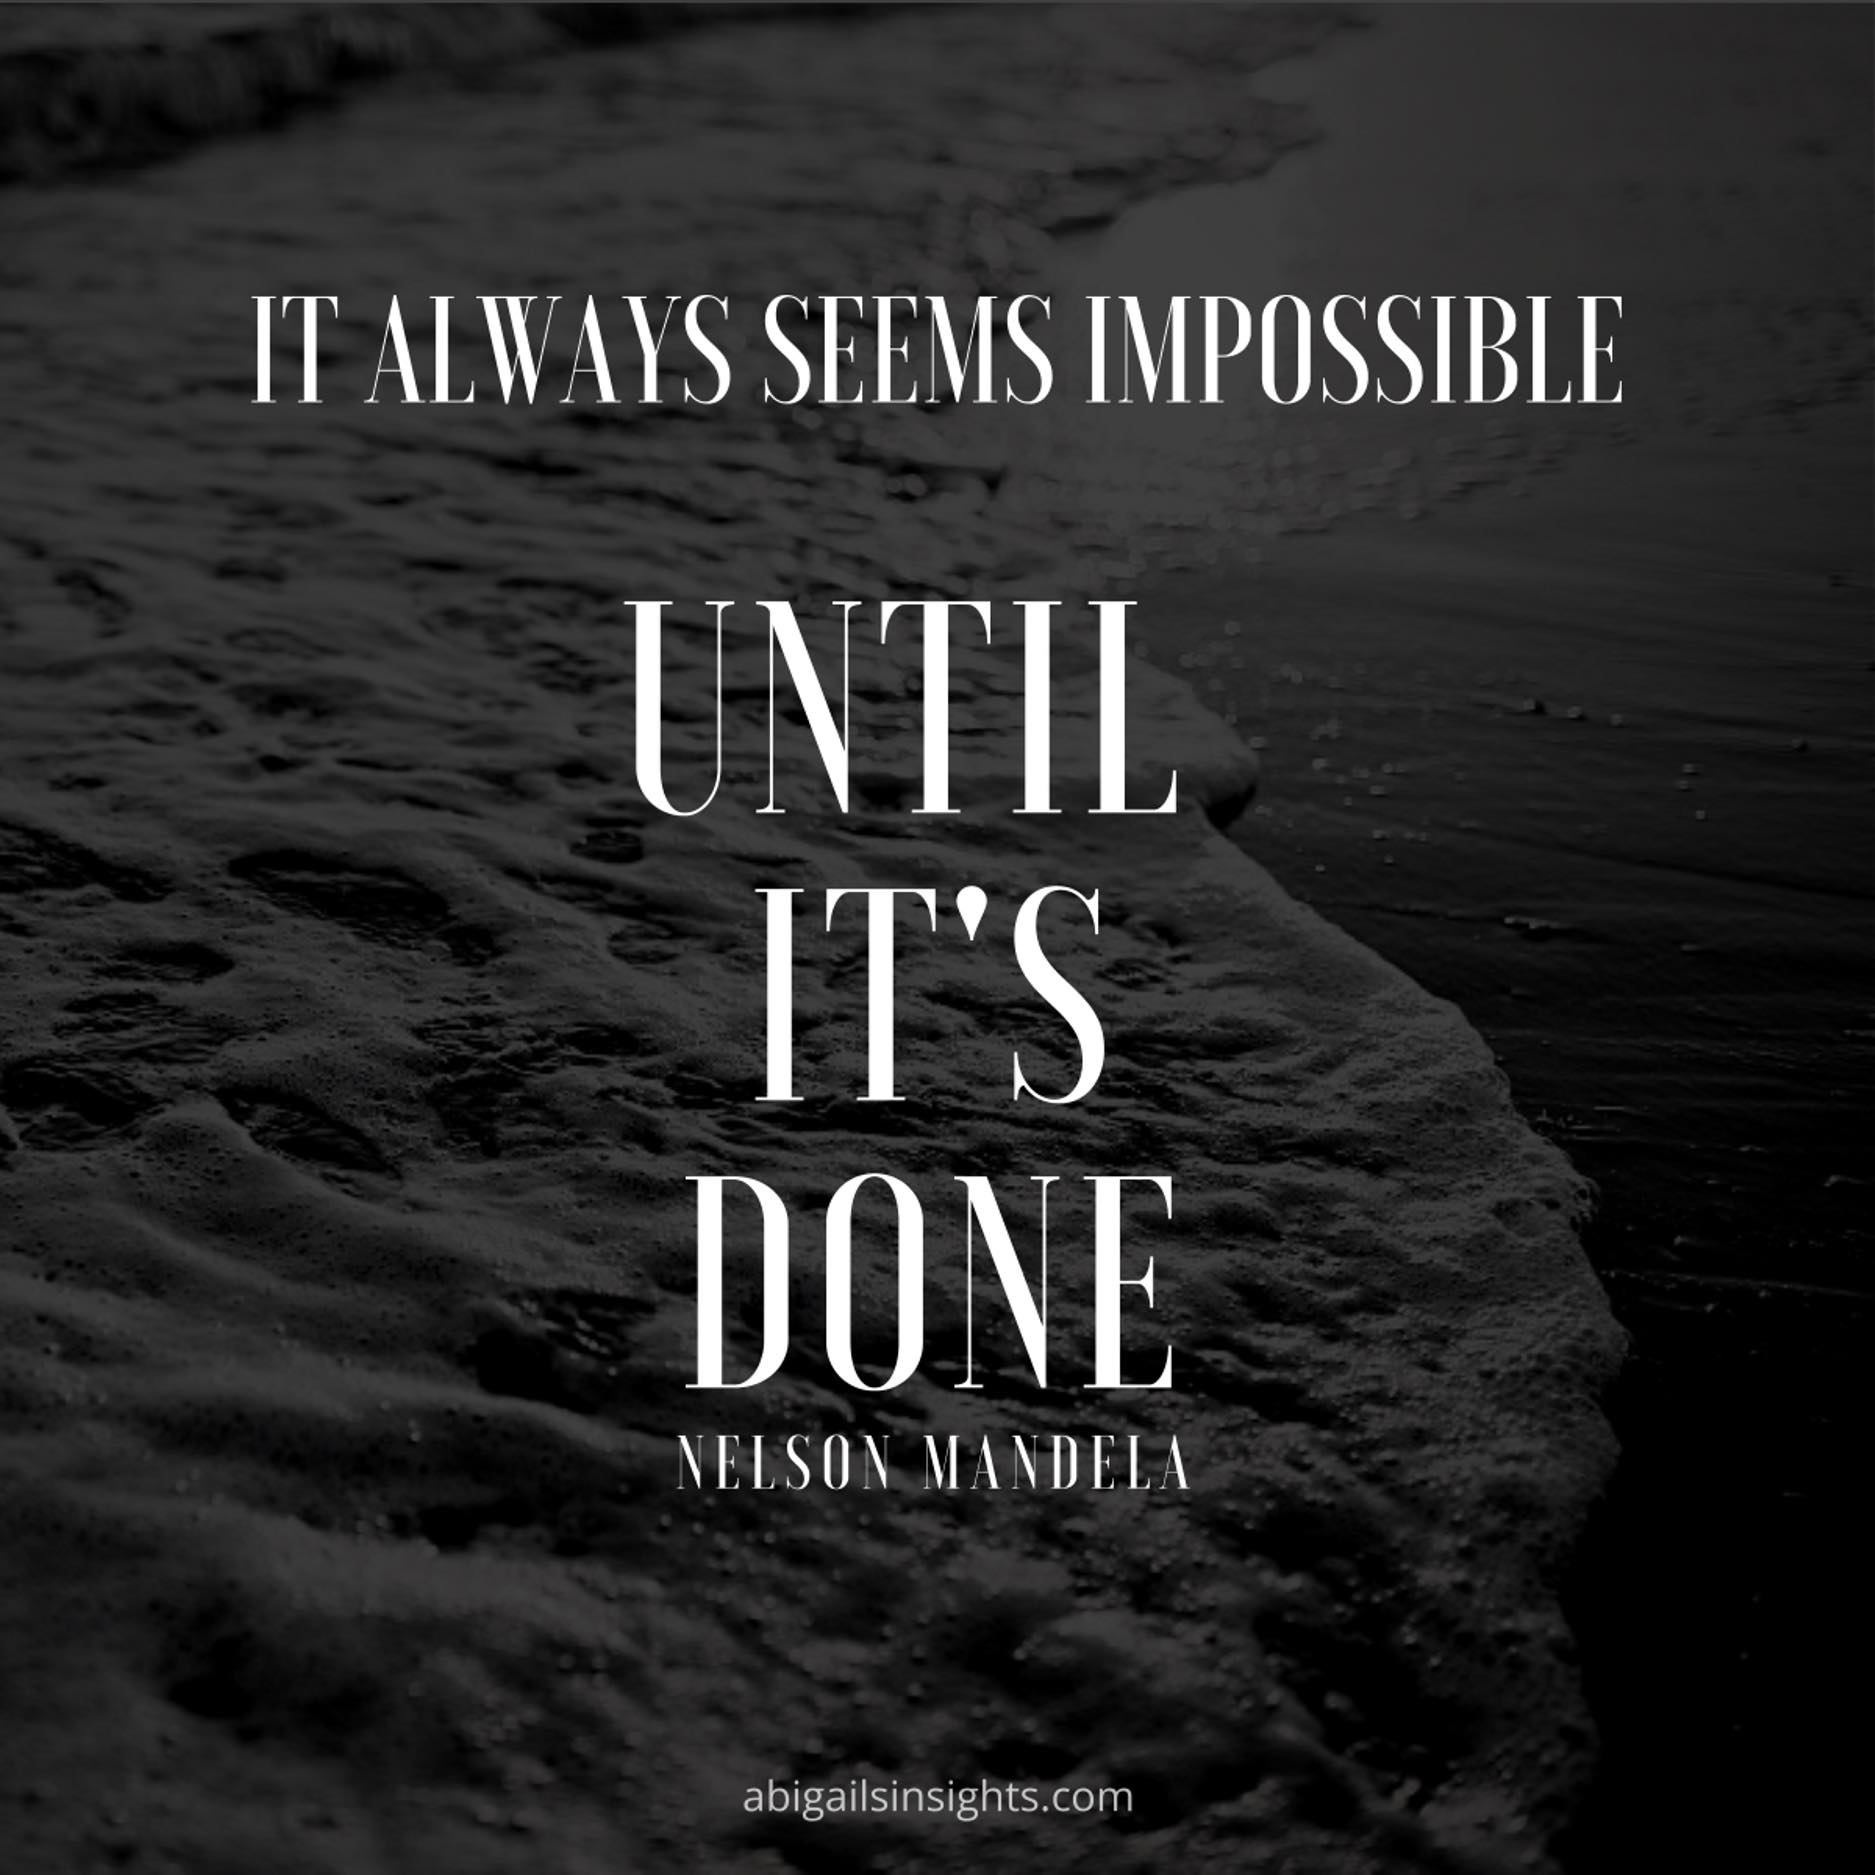 Impossible until done